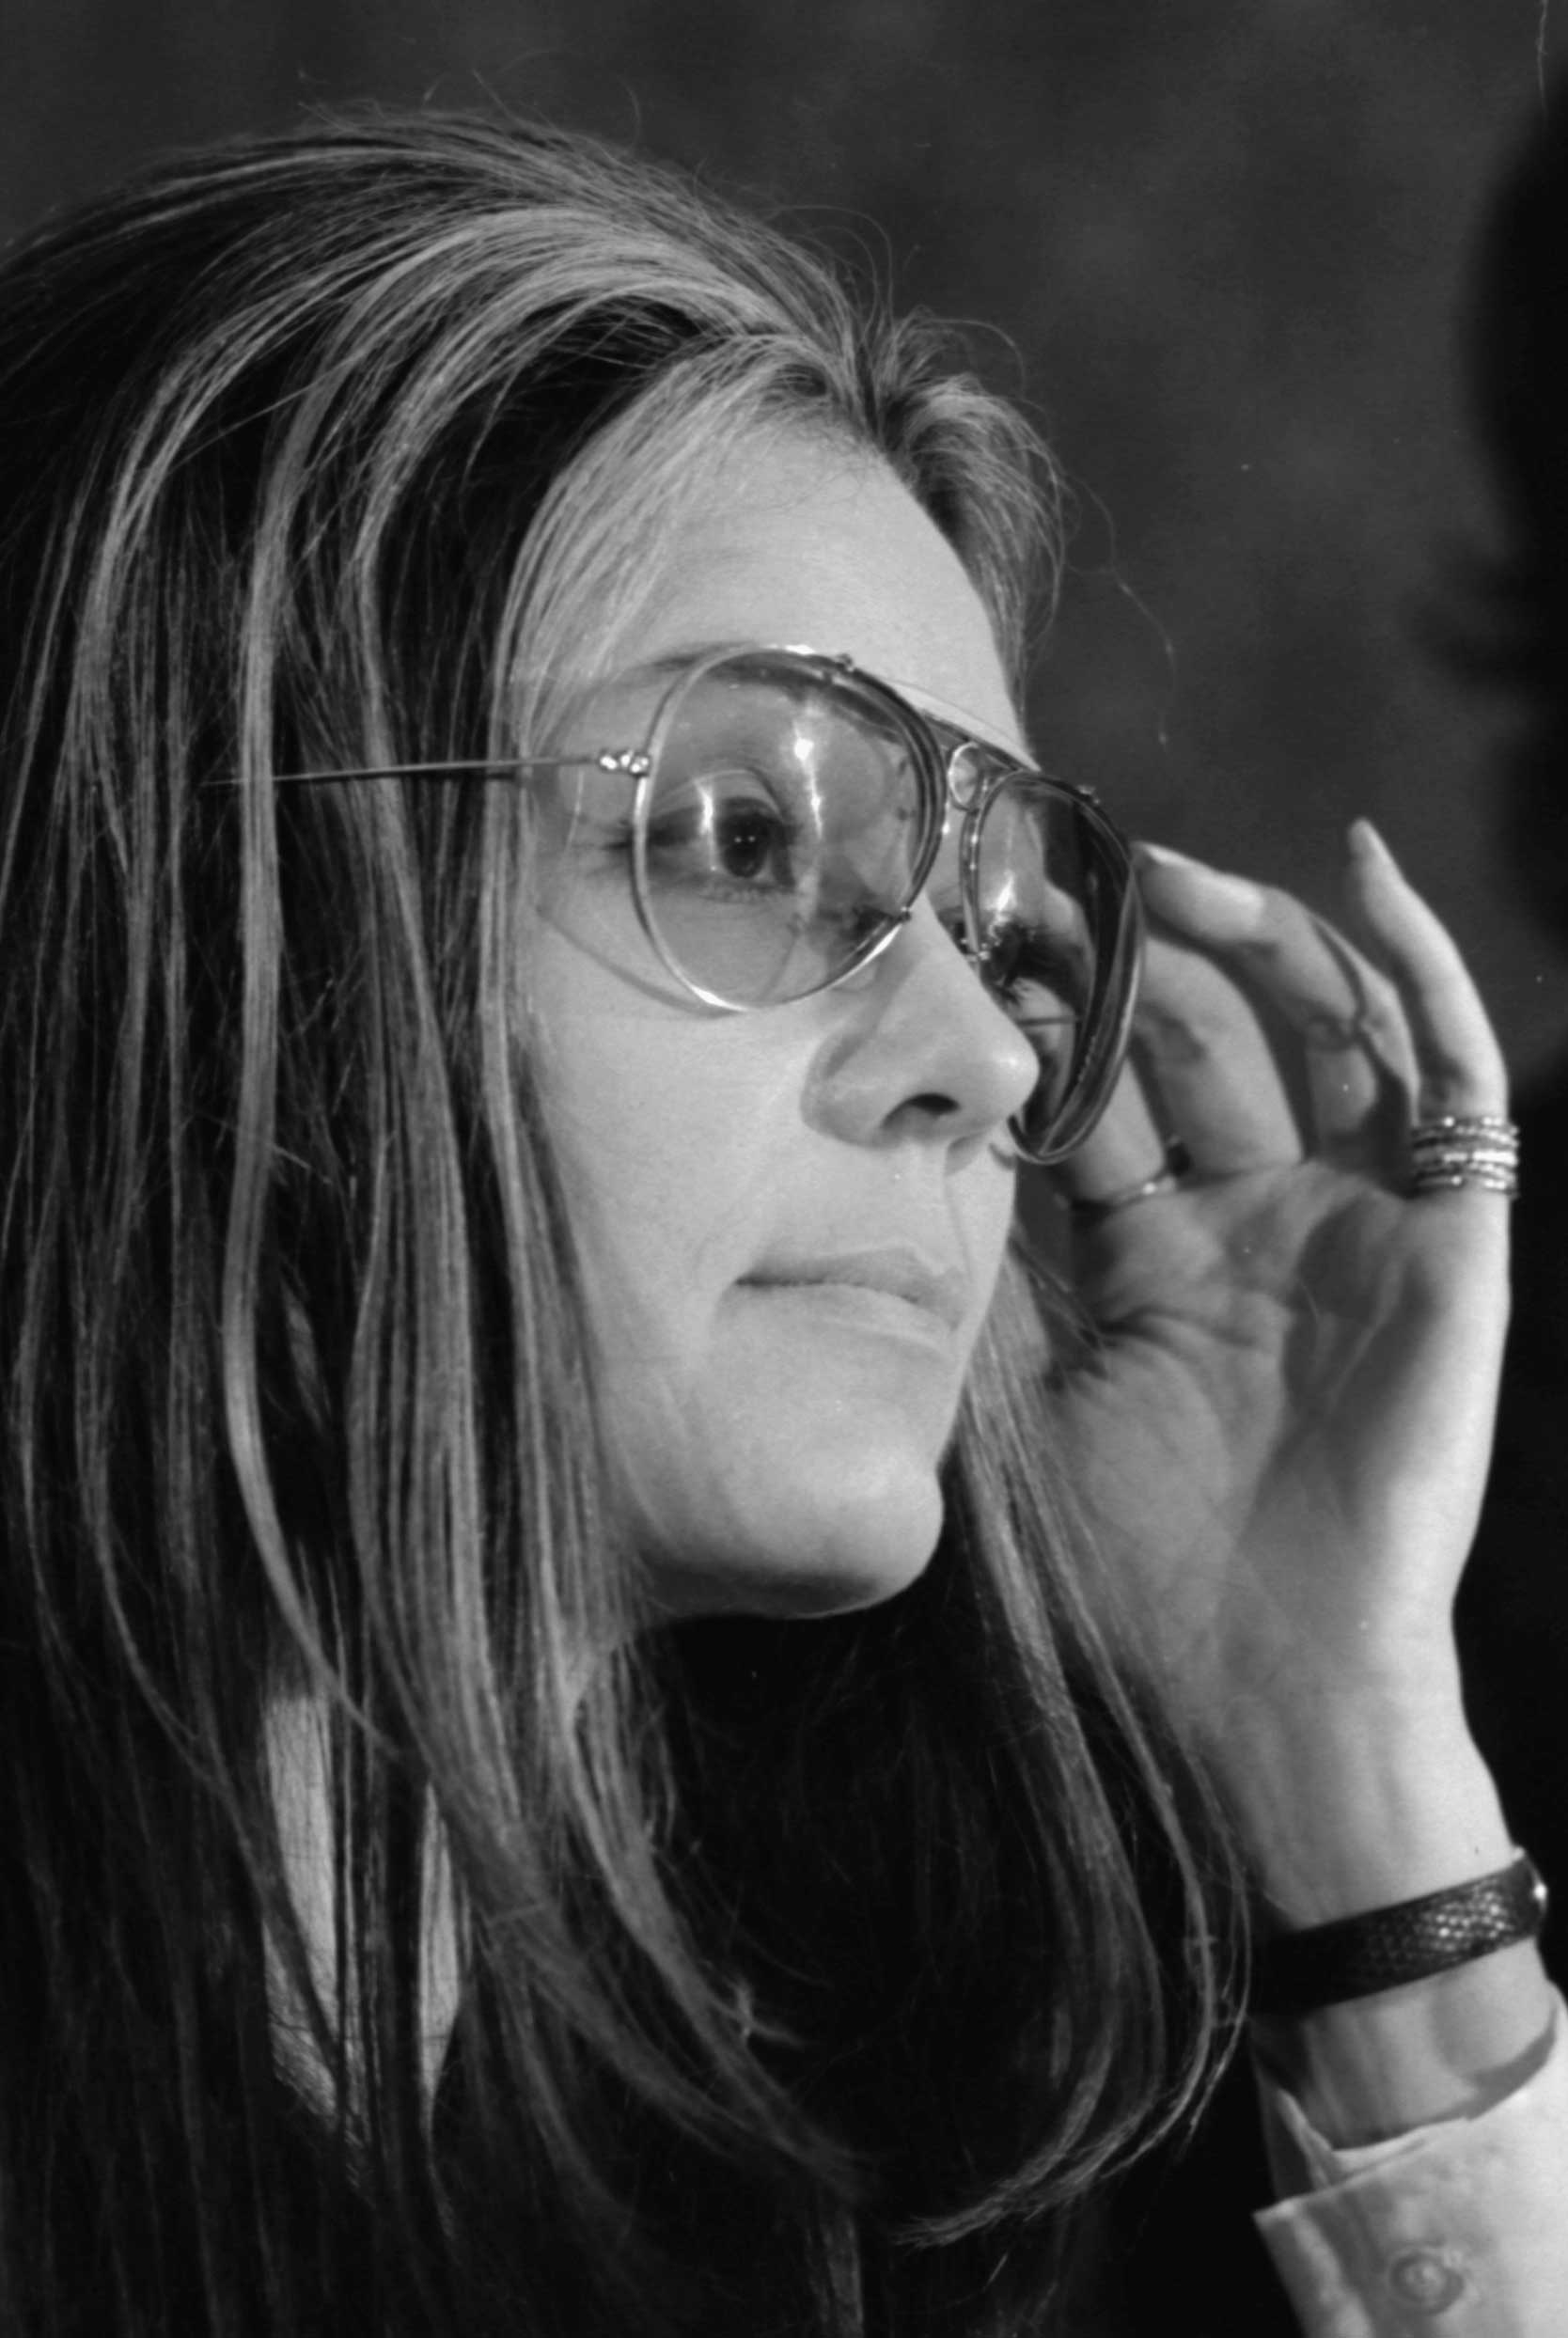 TAAL 0318 Gloria_Steinem_at_news_conference,_Women's_Action_Alliance,_January_12,_1972.jpg